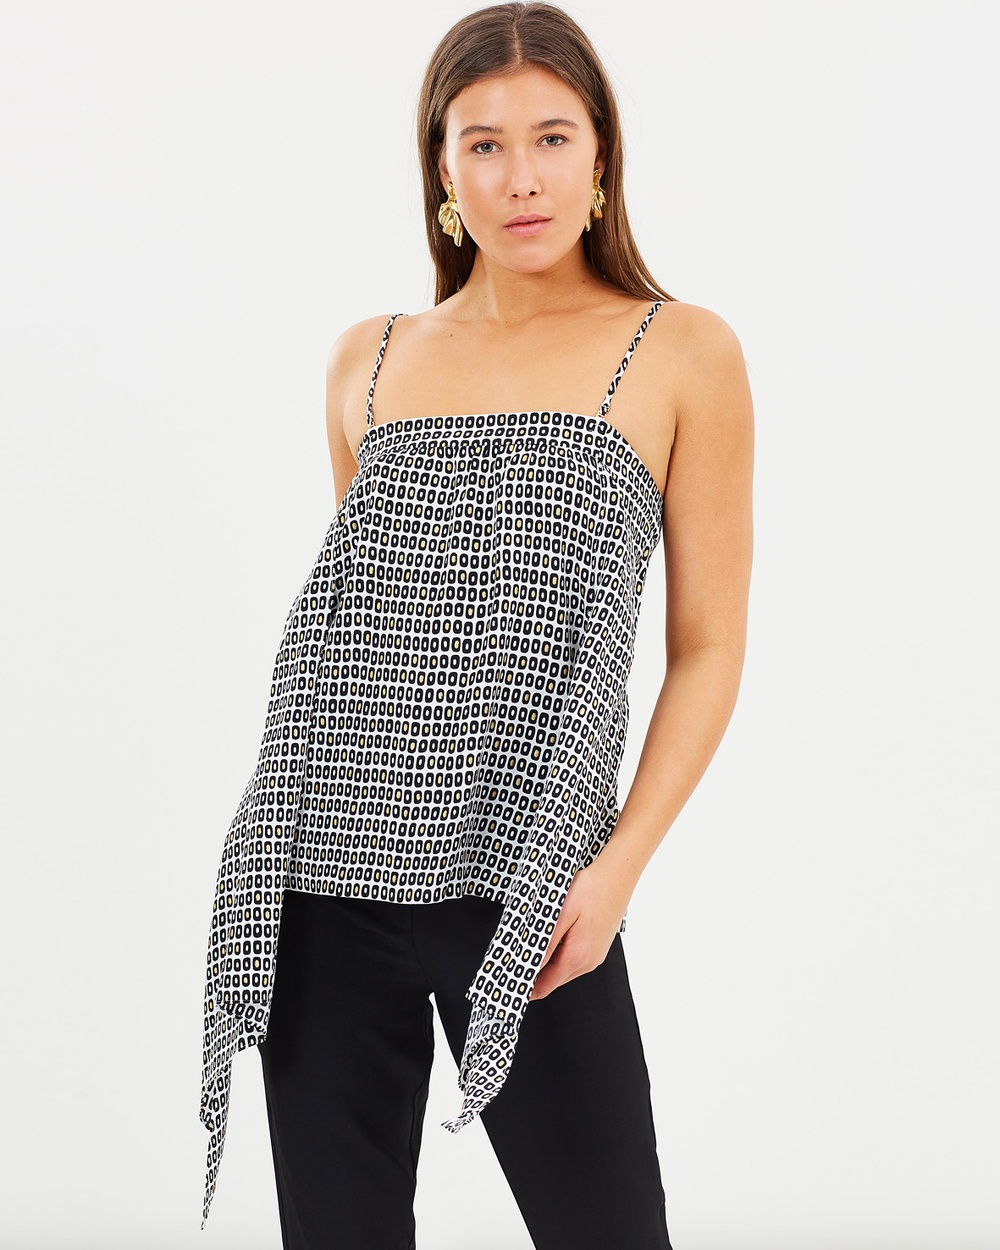 Sass & Bide The Cut Strappy Top Tops Print The Cut Strappy Top